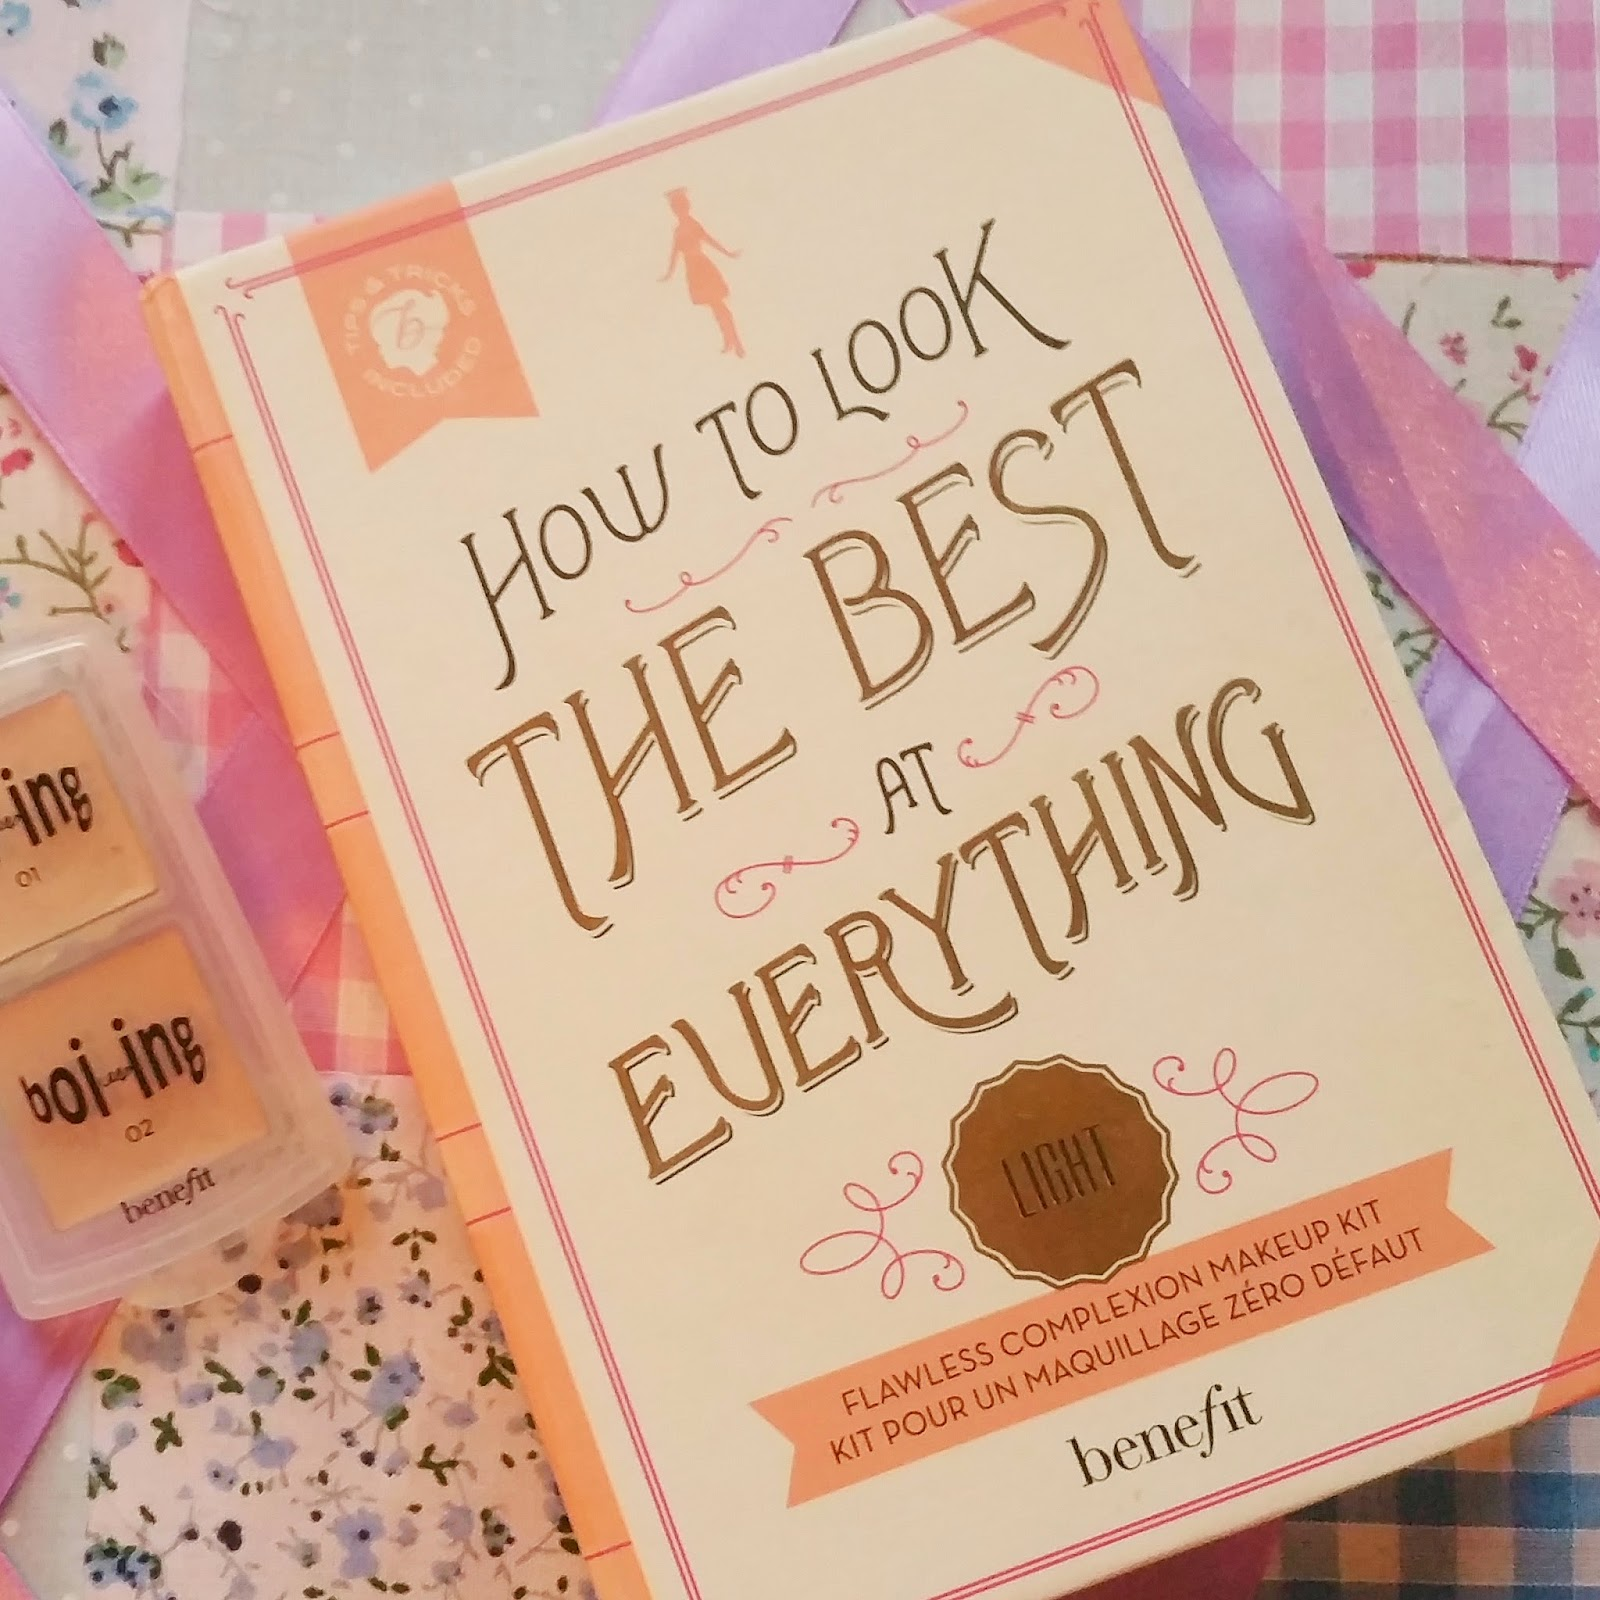 Beauty   Benefit How to Look the Best at Everything (Light)